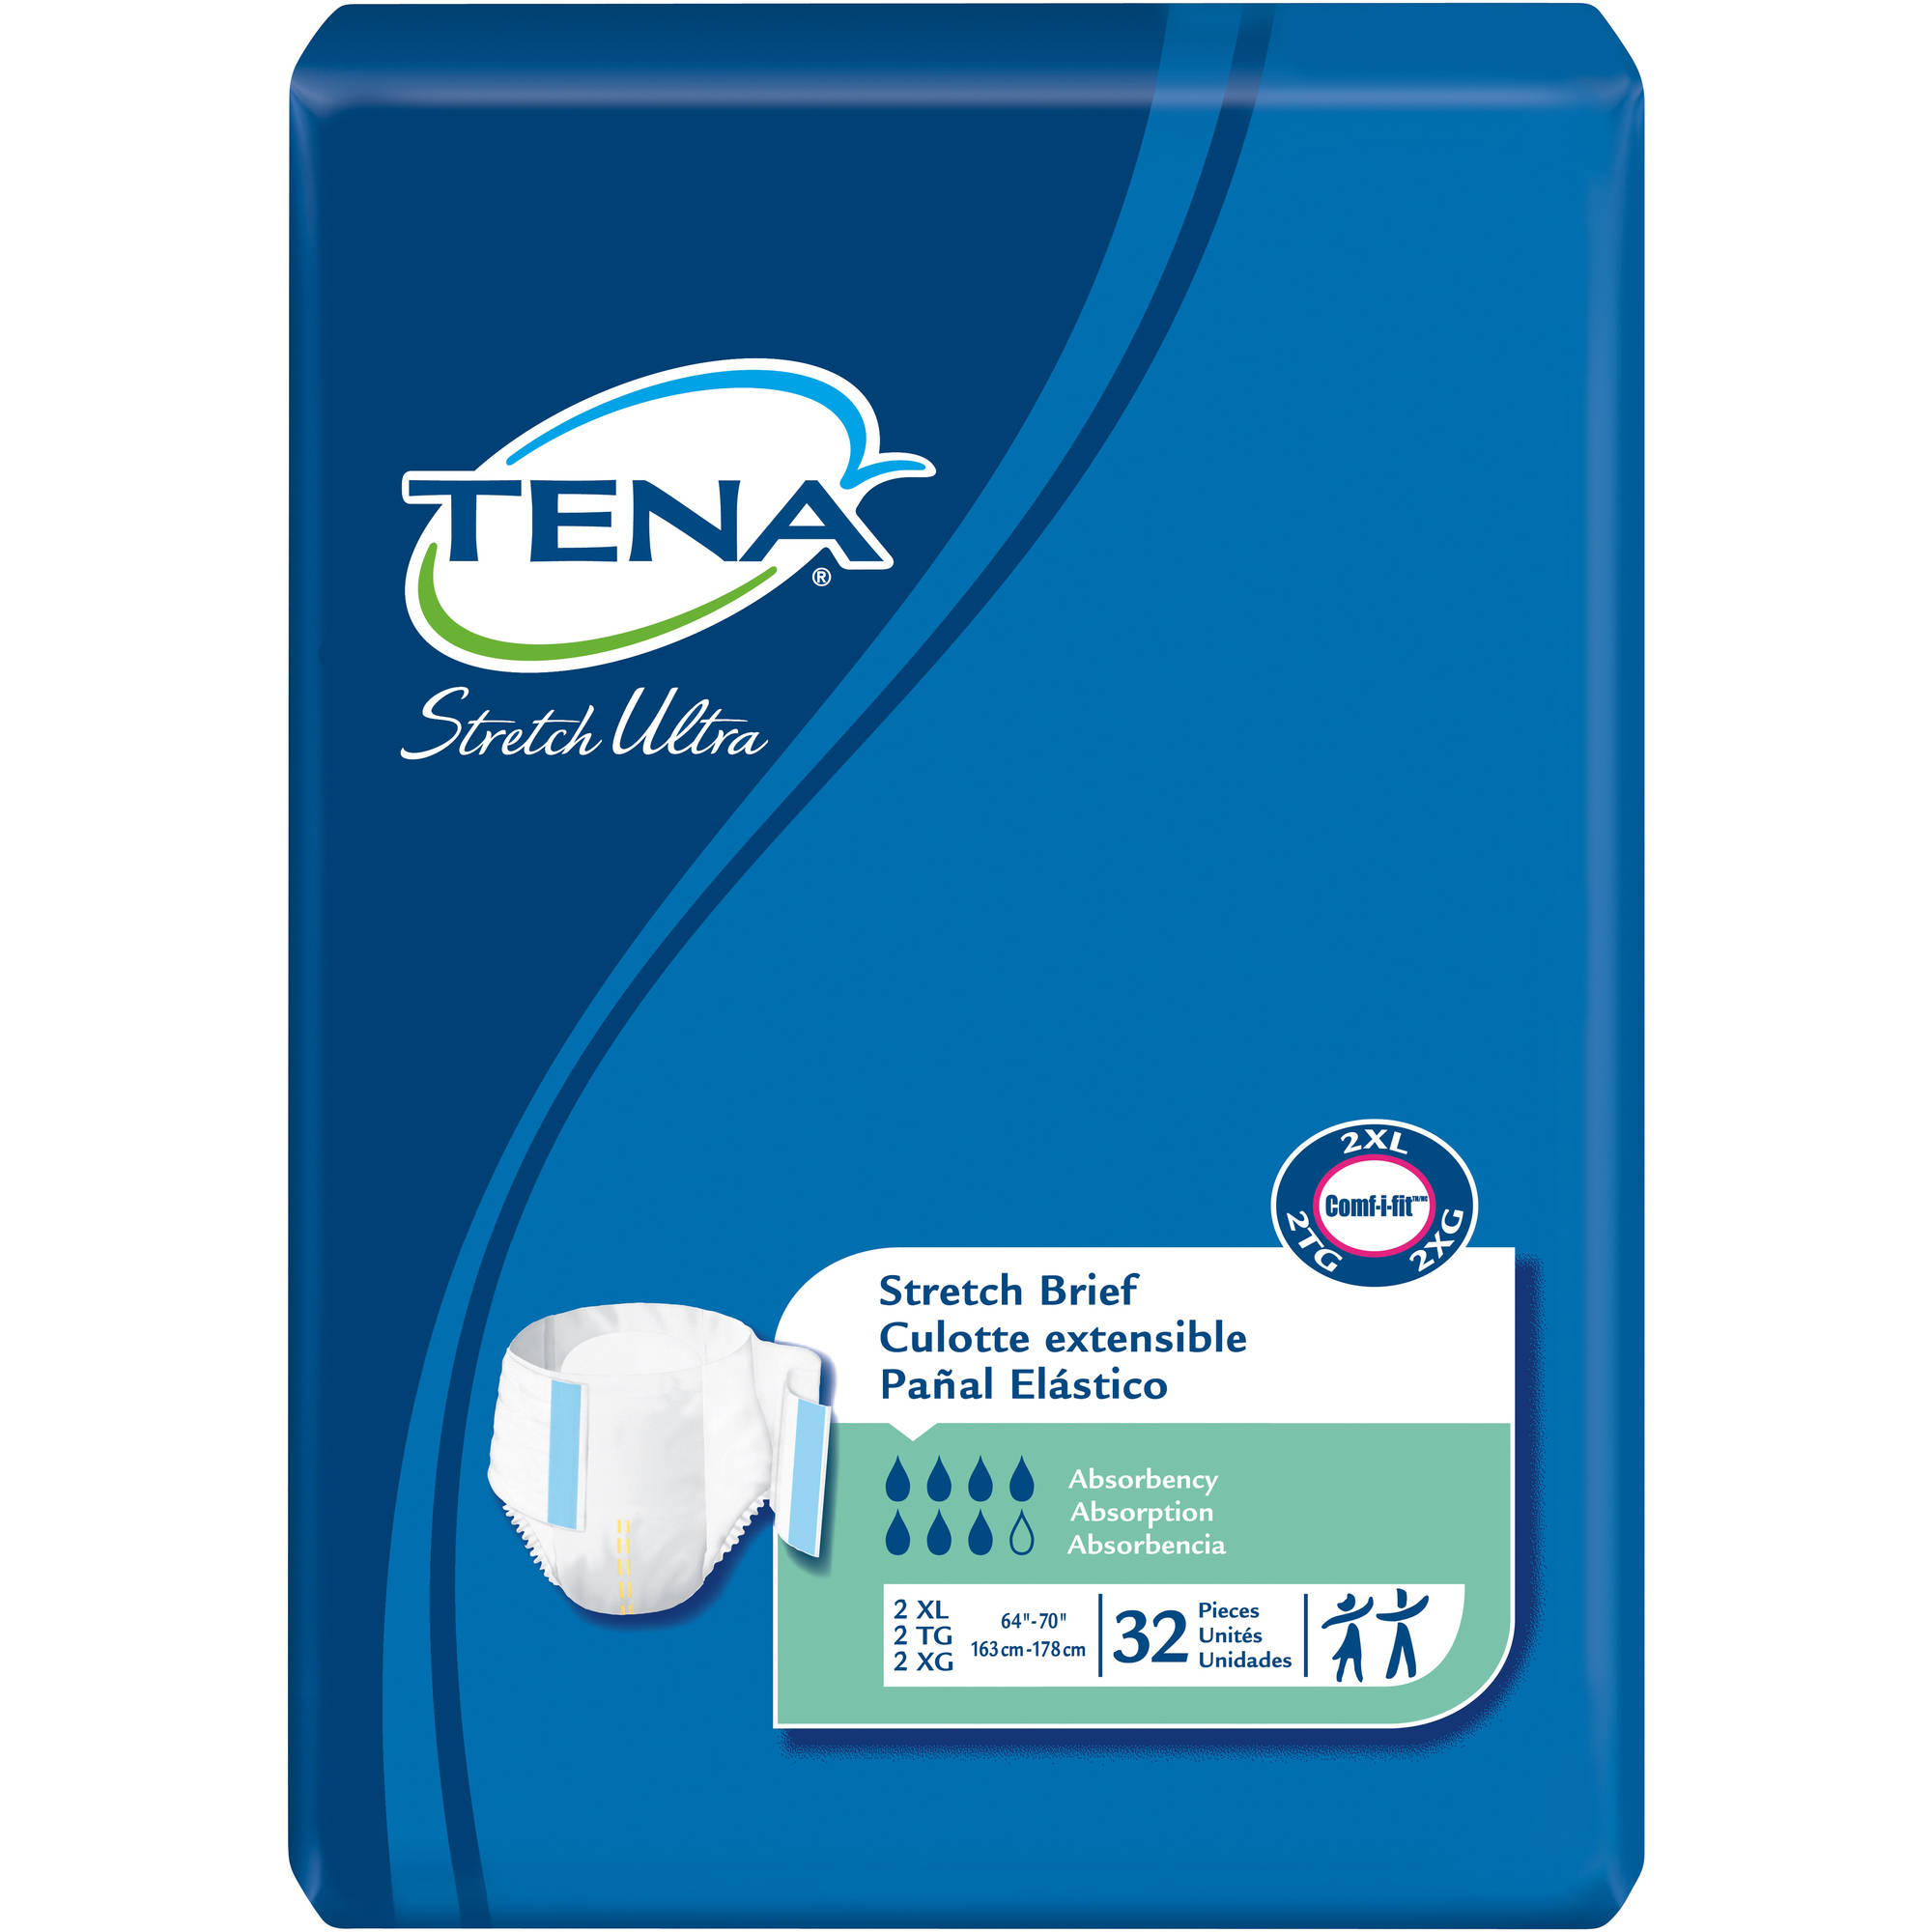 Tena Stretch Ultra Stretch Briefs, 2XL, 32 count